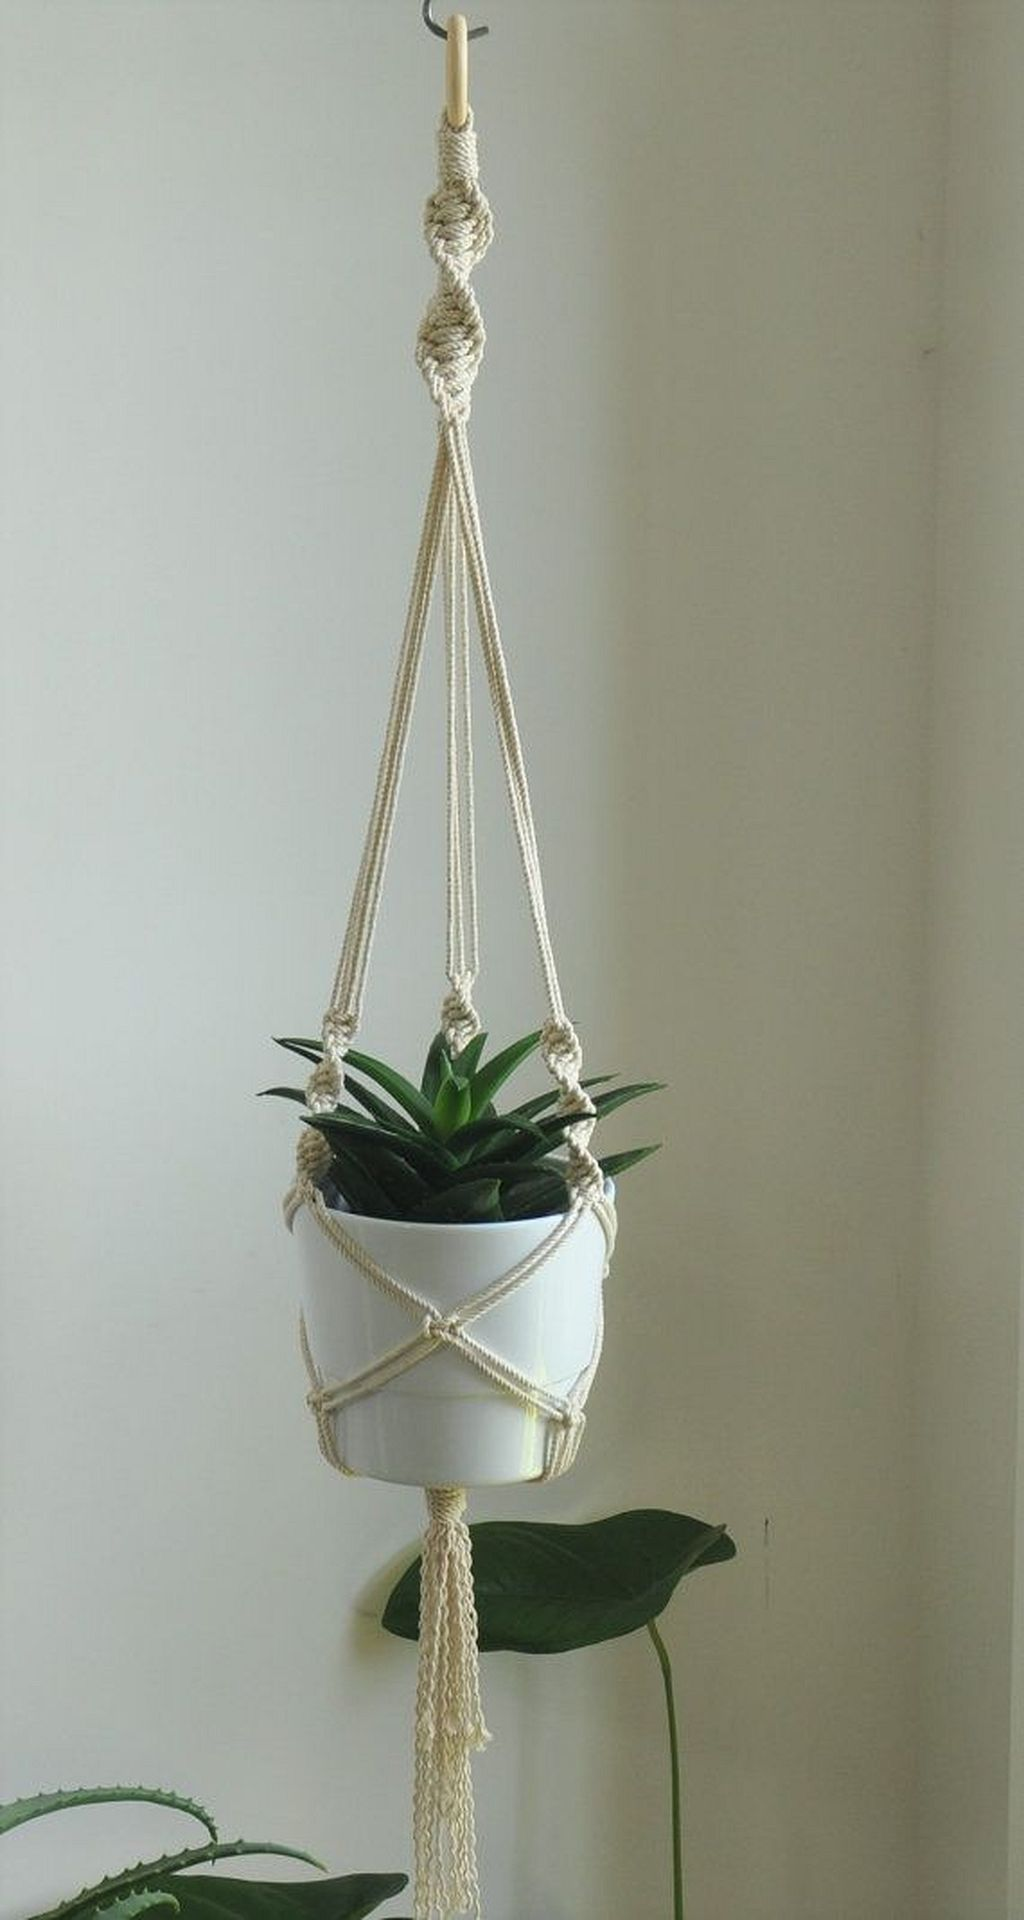 Indoor Wall Mounted Plant Holders 50 43 Ideas To Make Macrame Plant Hanger Diy Macramé Plant